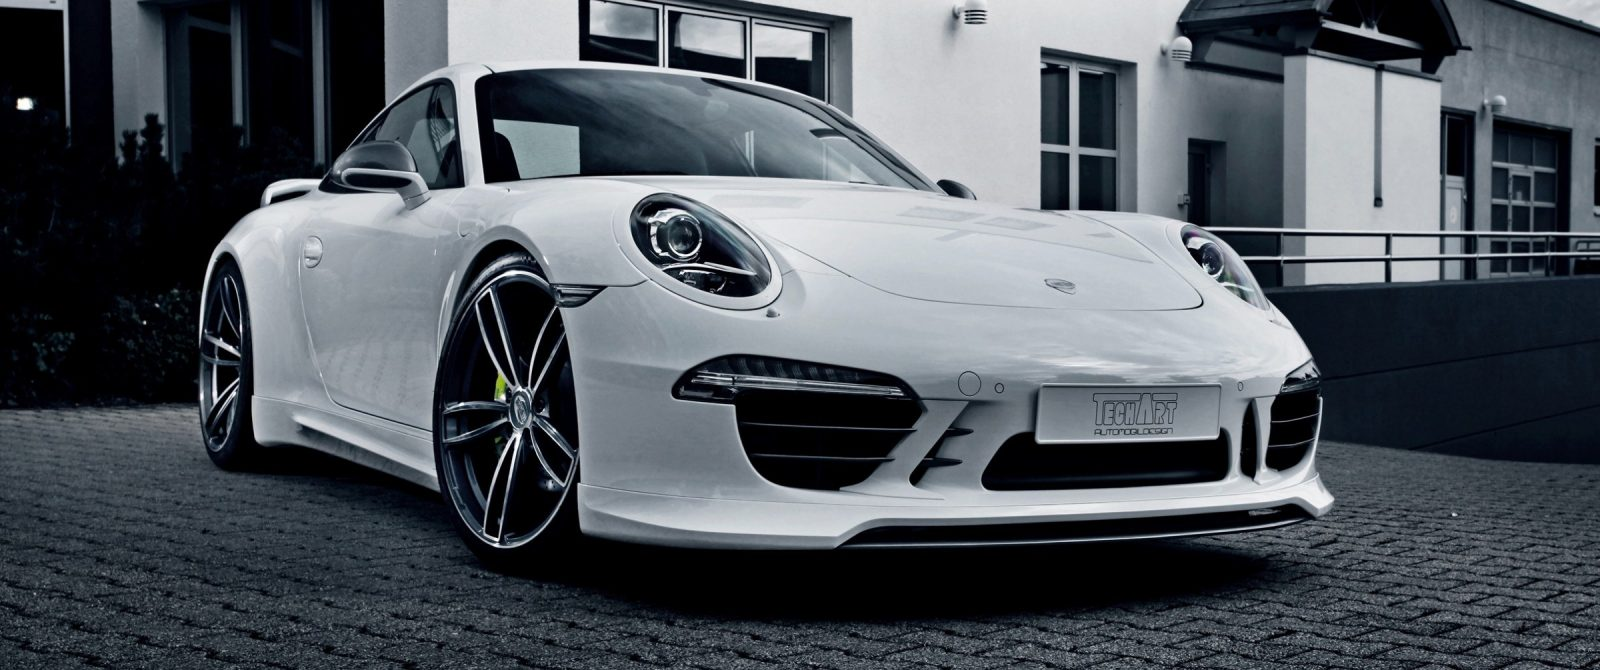 TECHART_for_Porsche_911_Carrera_4S_with_Formula_IV_exterior3